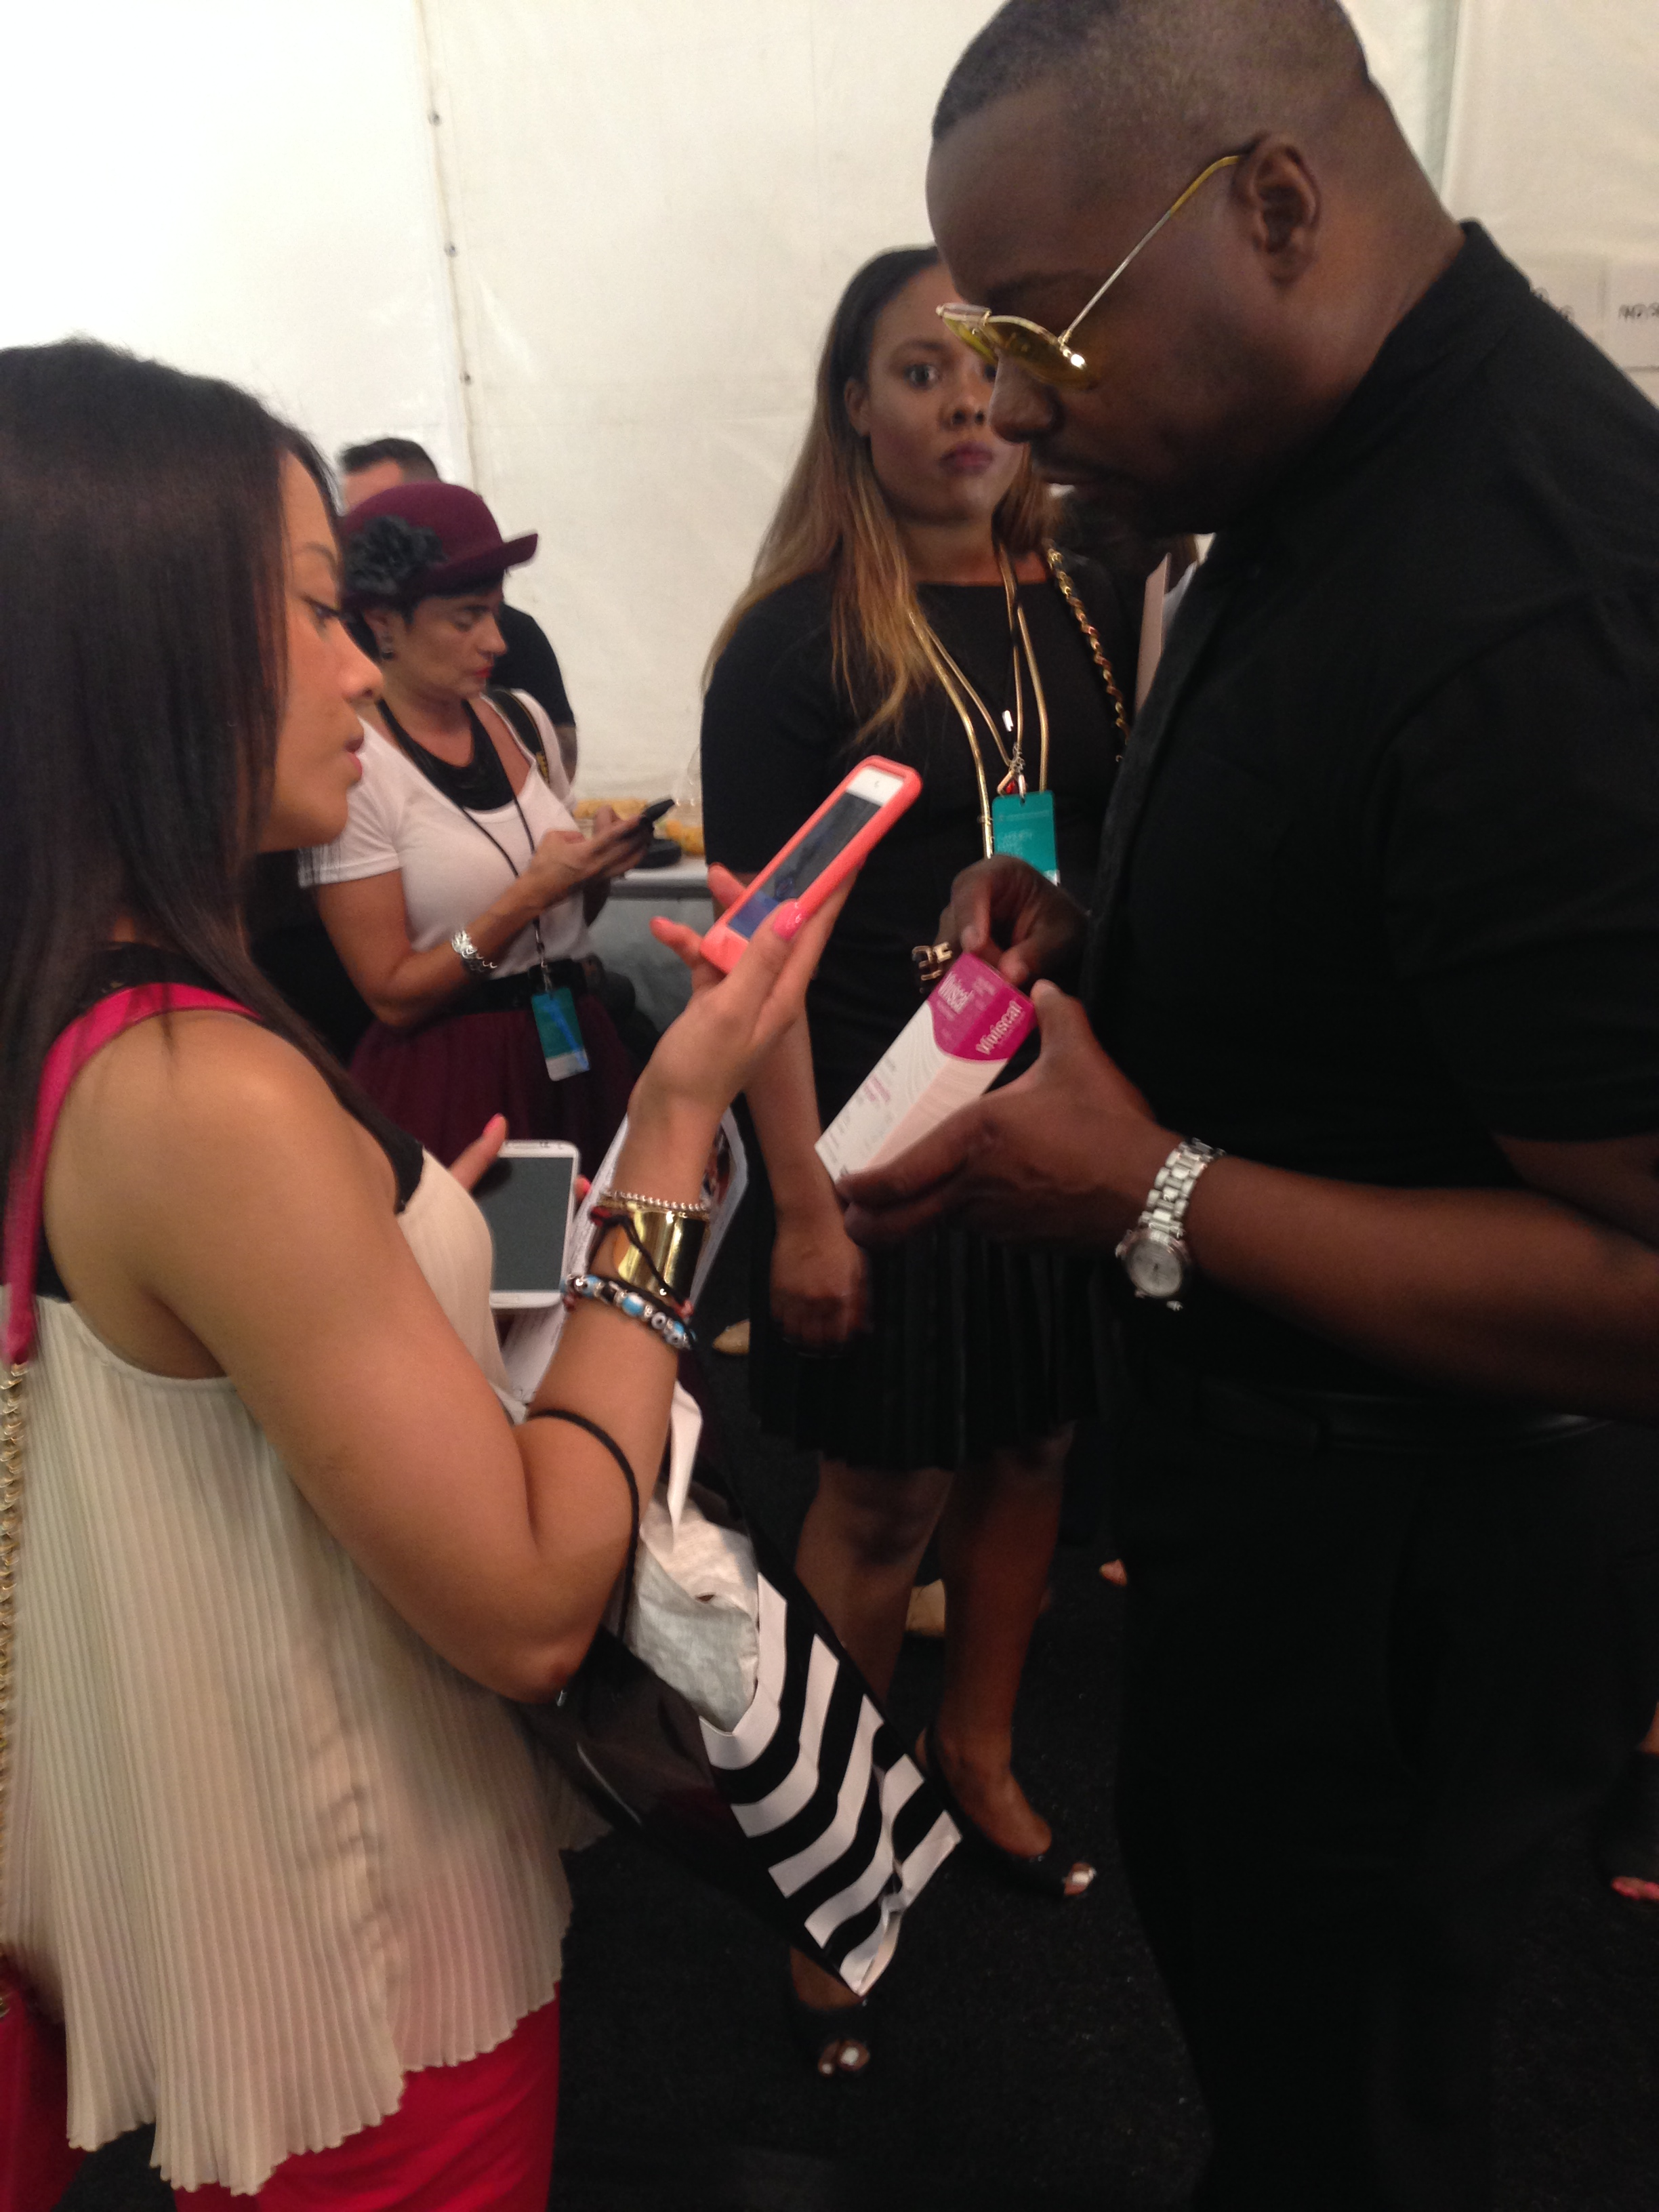 Ted Gibson recommends Viviscal to models and other clients for healthy hair growth